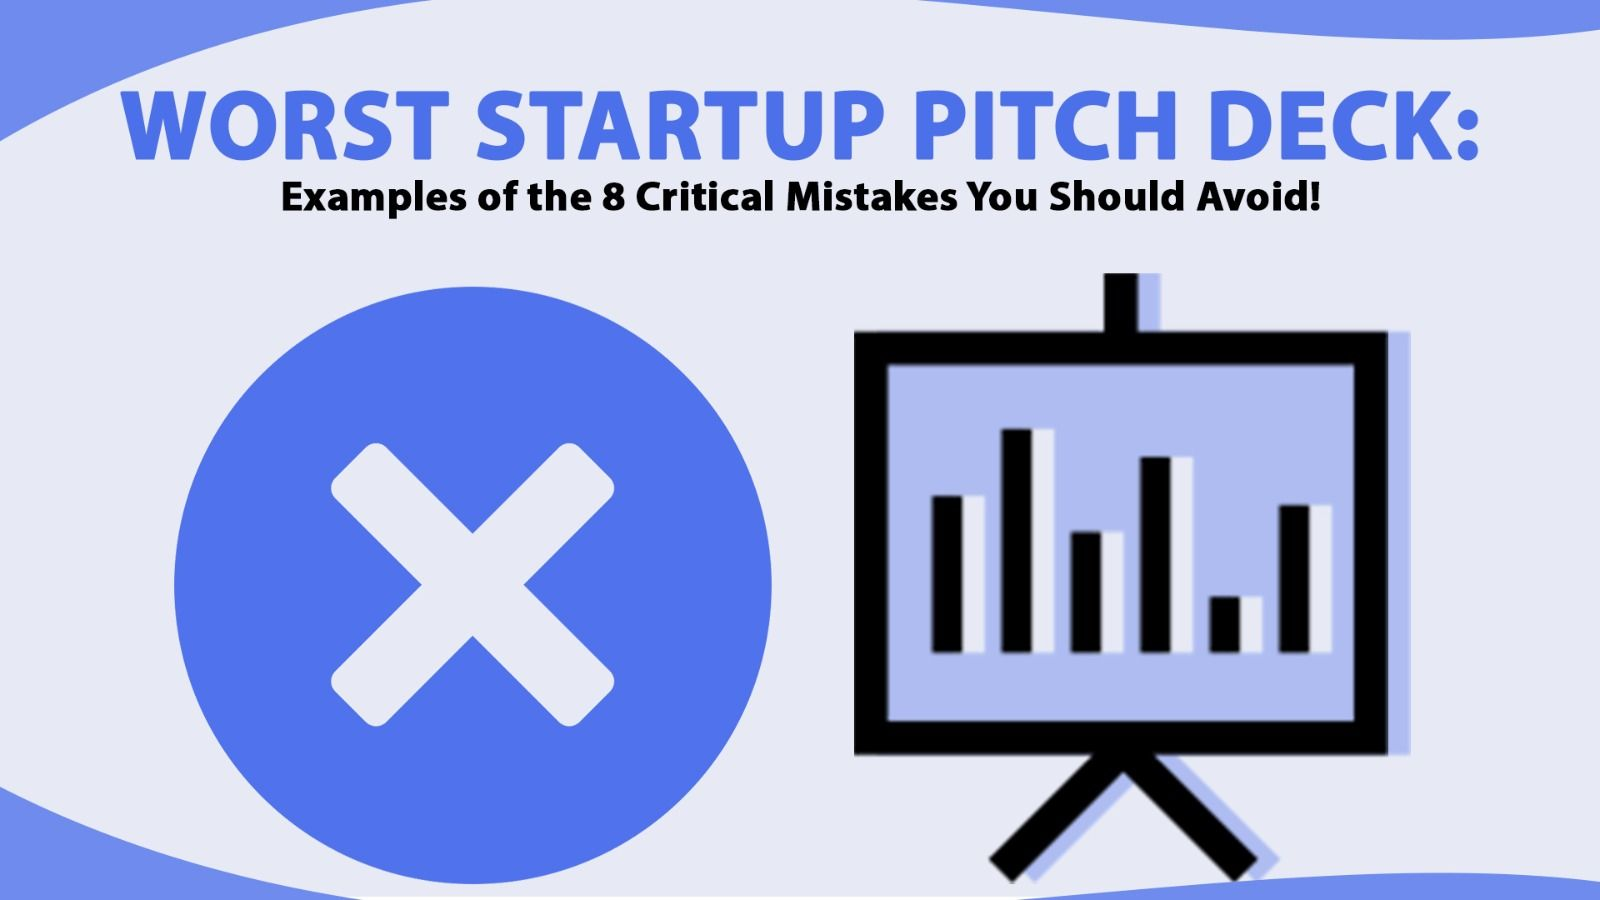 Worst Startup Pitch Deck: Examples of the 8 Critical Mistakes You Should Avoid!